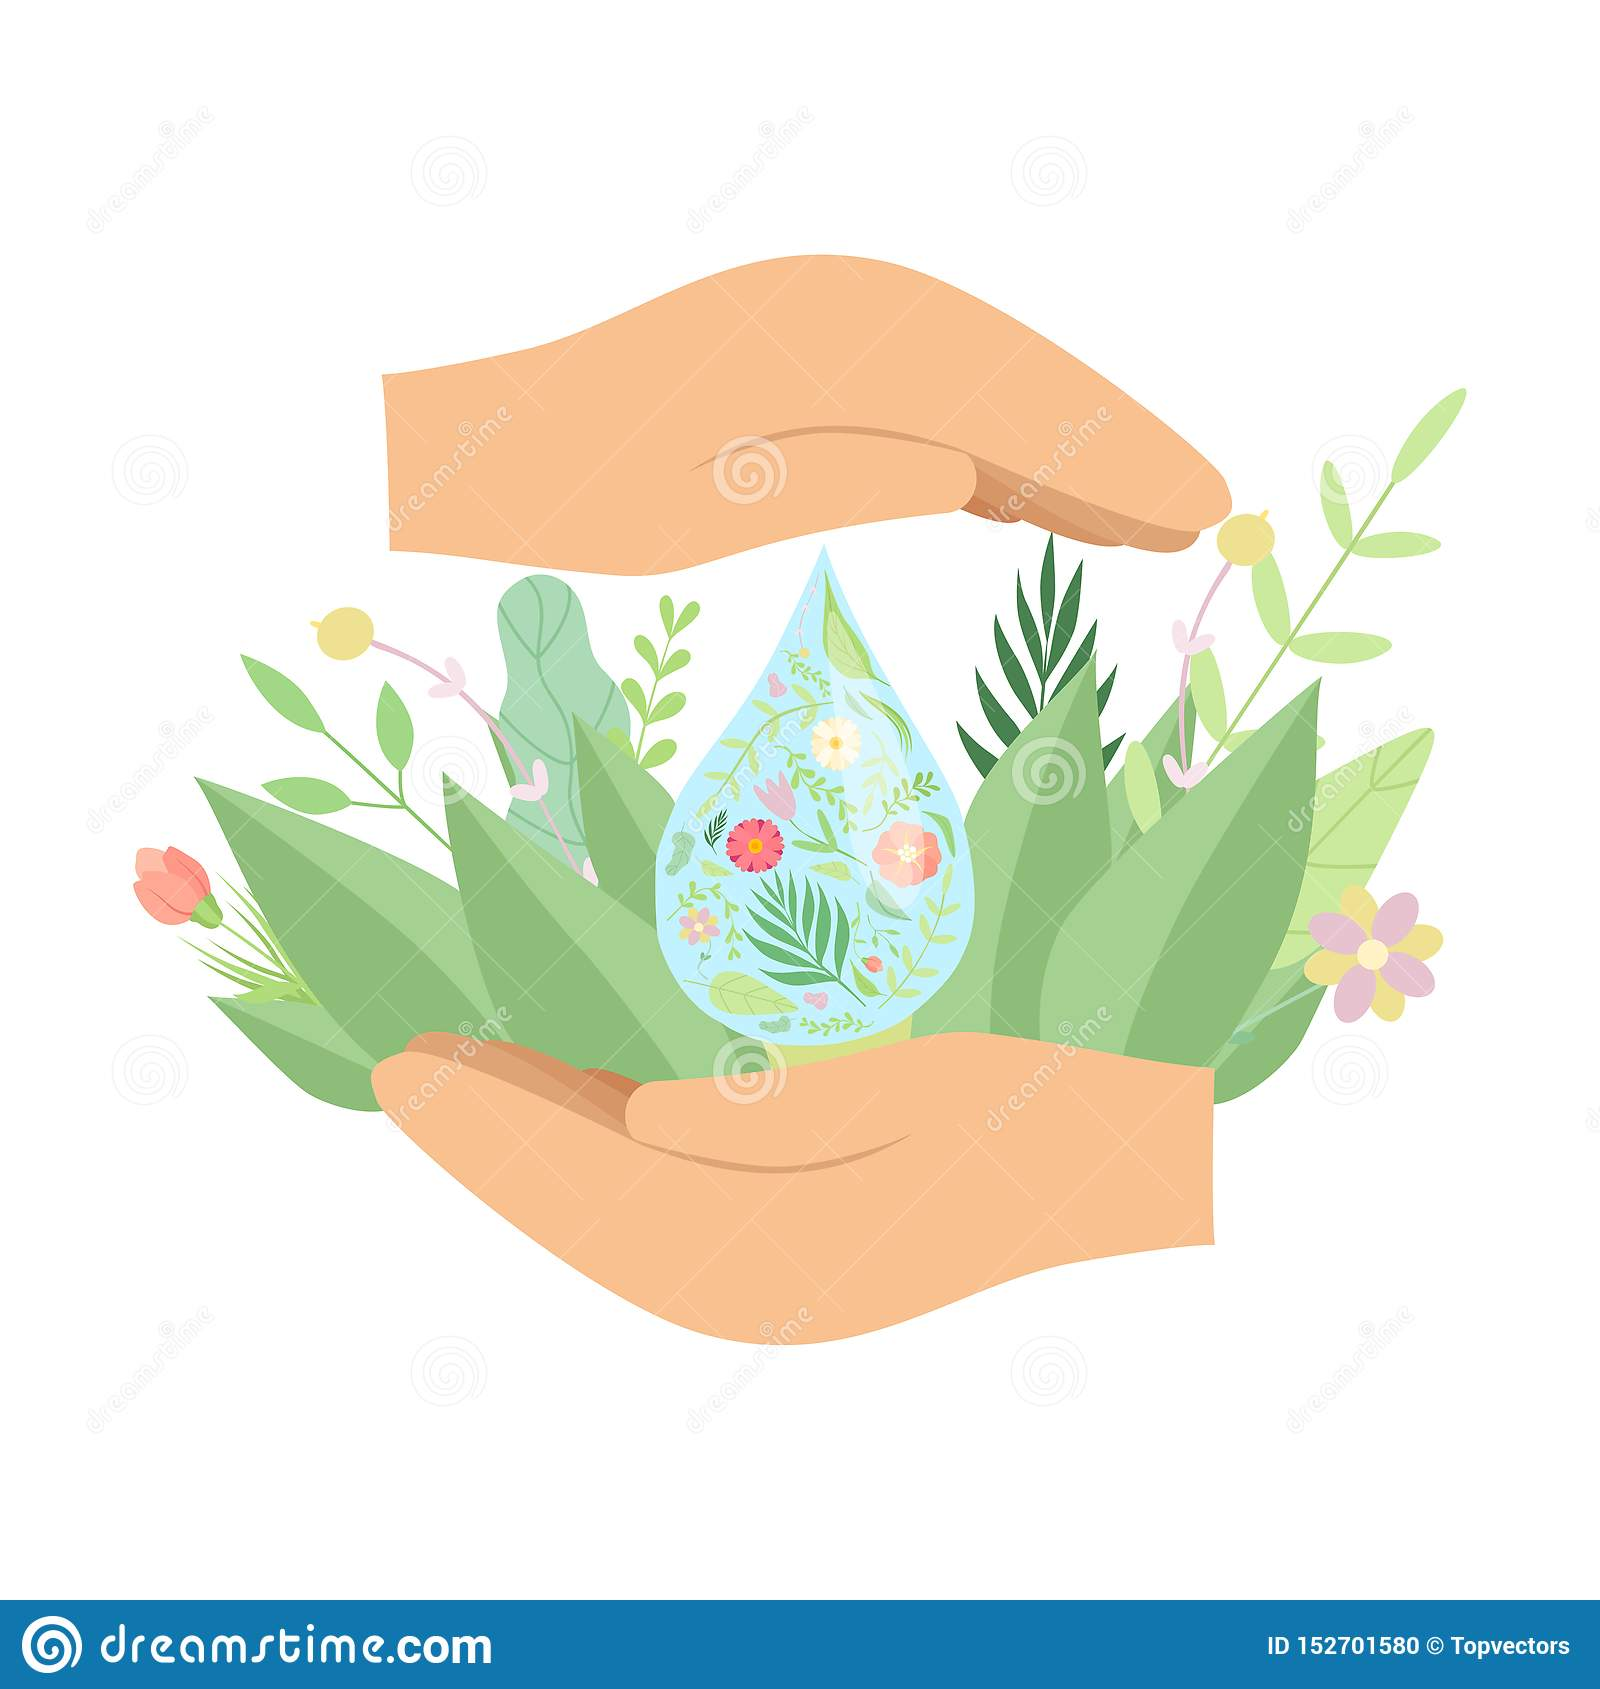 Human Hands Holding Fresh Water Drop, Green Leaves and Flowers, Save Water, Environmental Protection, Ecology Concept